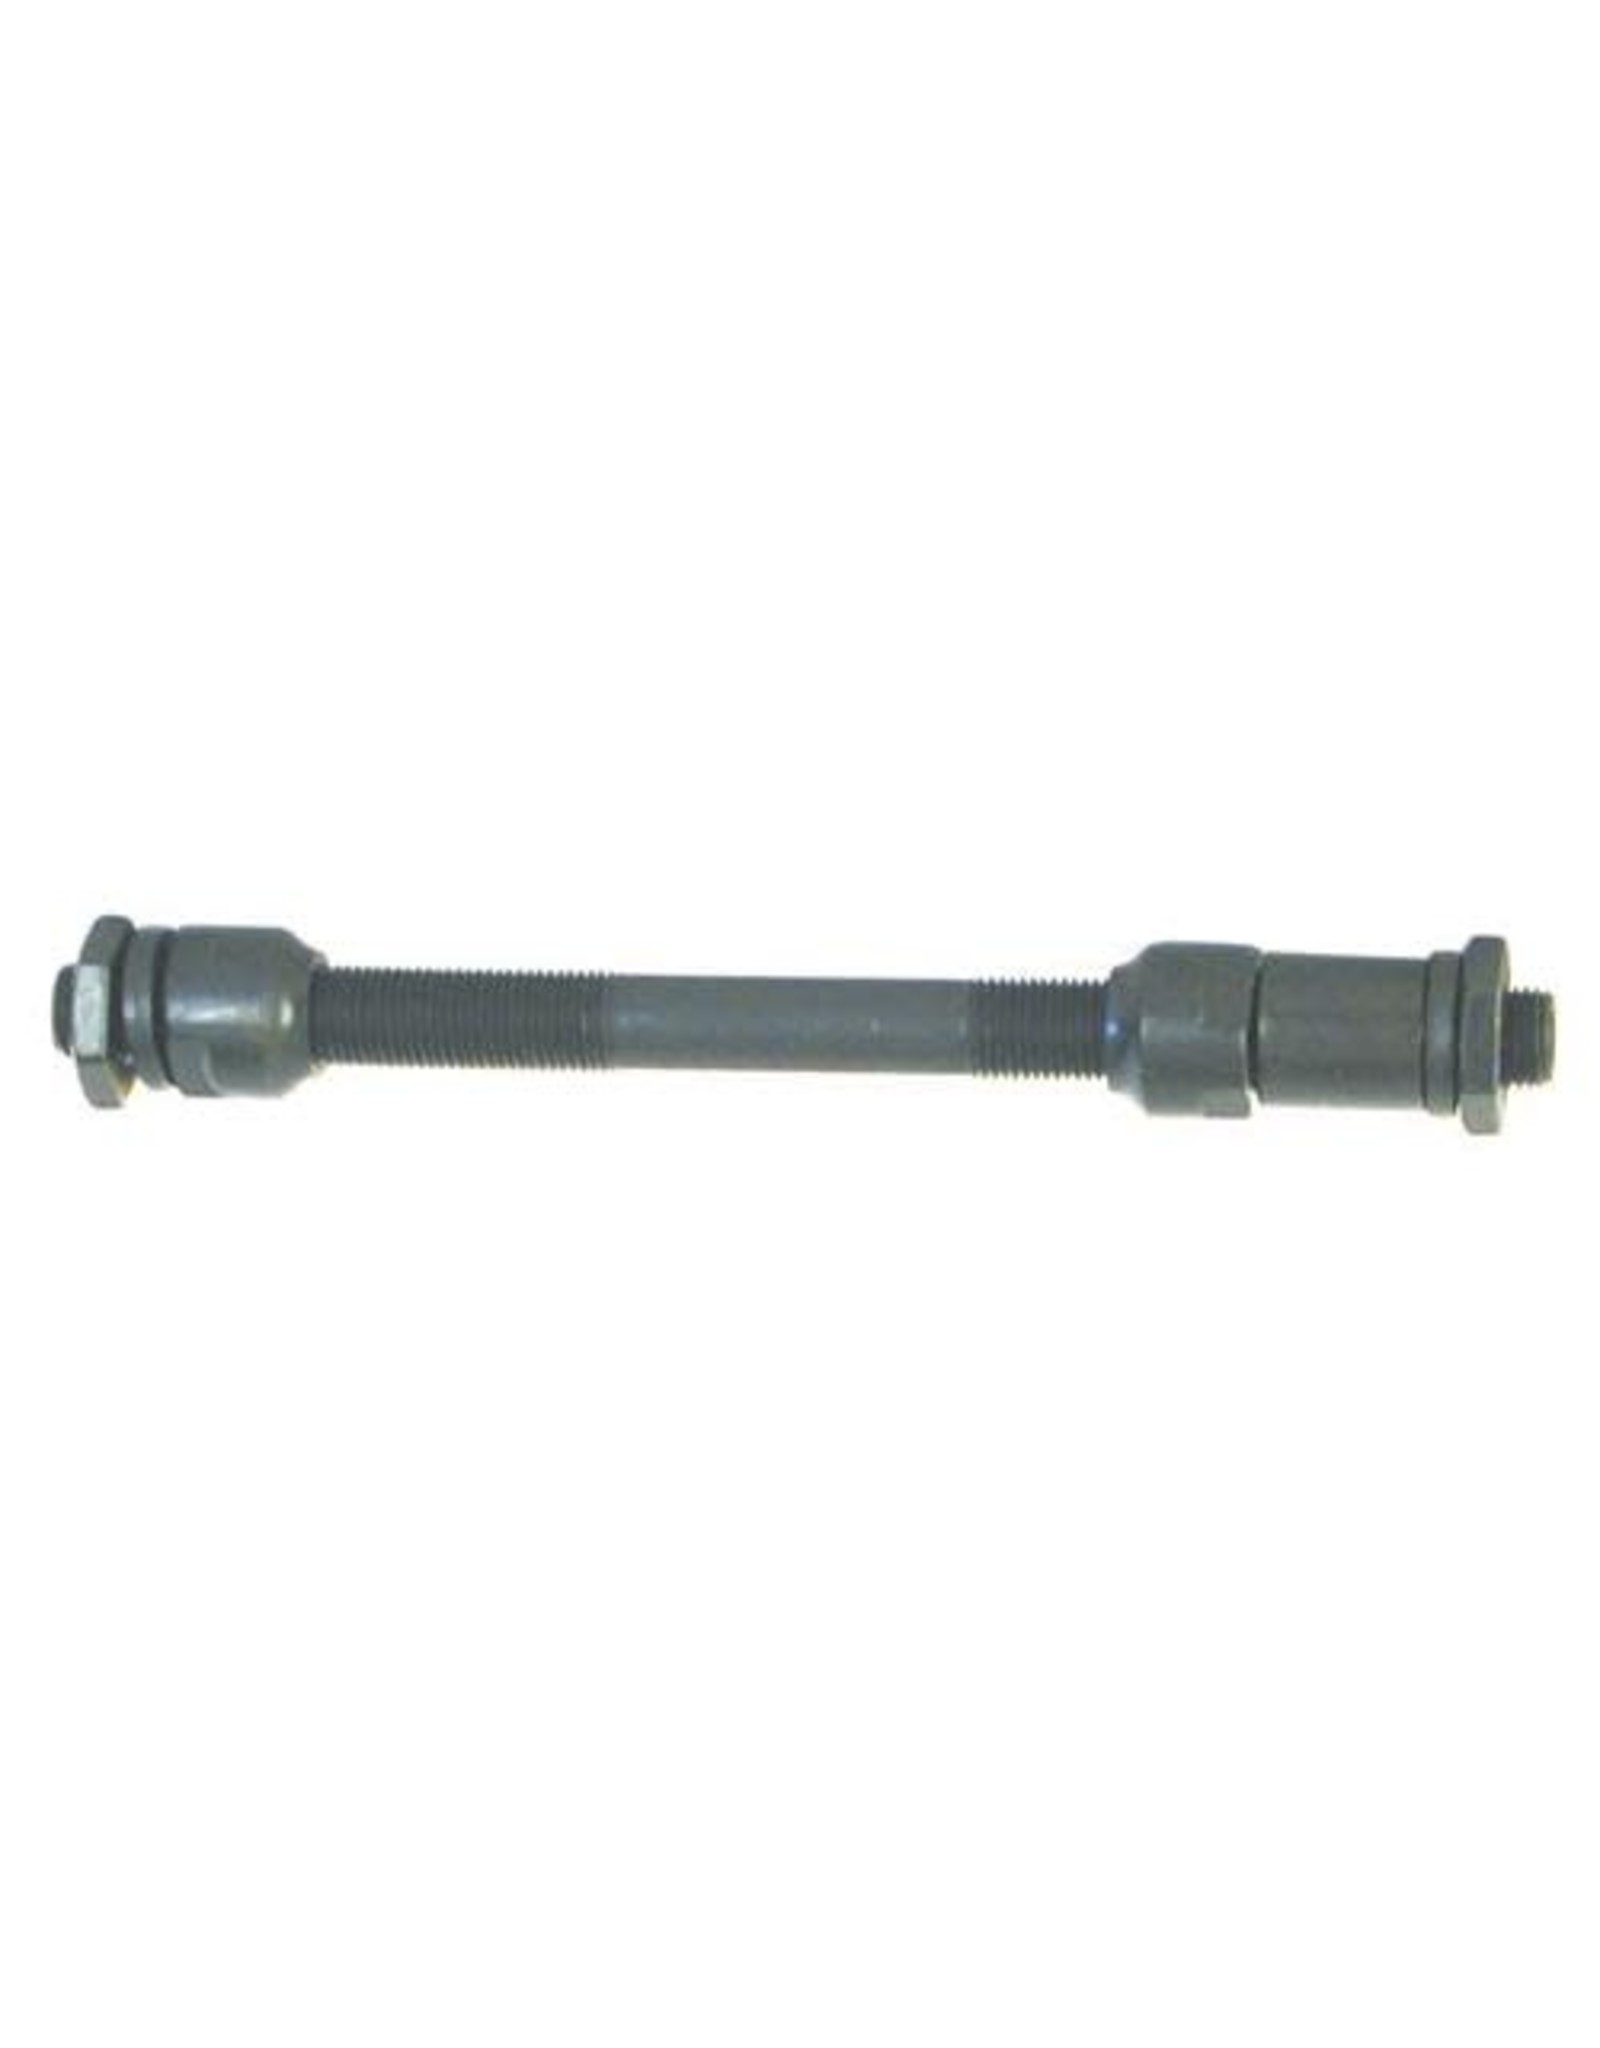 BIKECORP BIKECORP REAR AXLE Q/R WITH CONES 145mm 8/9 SPEED